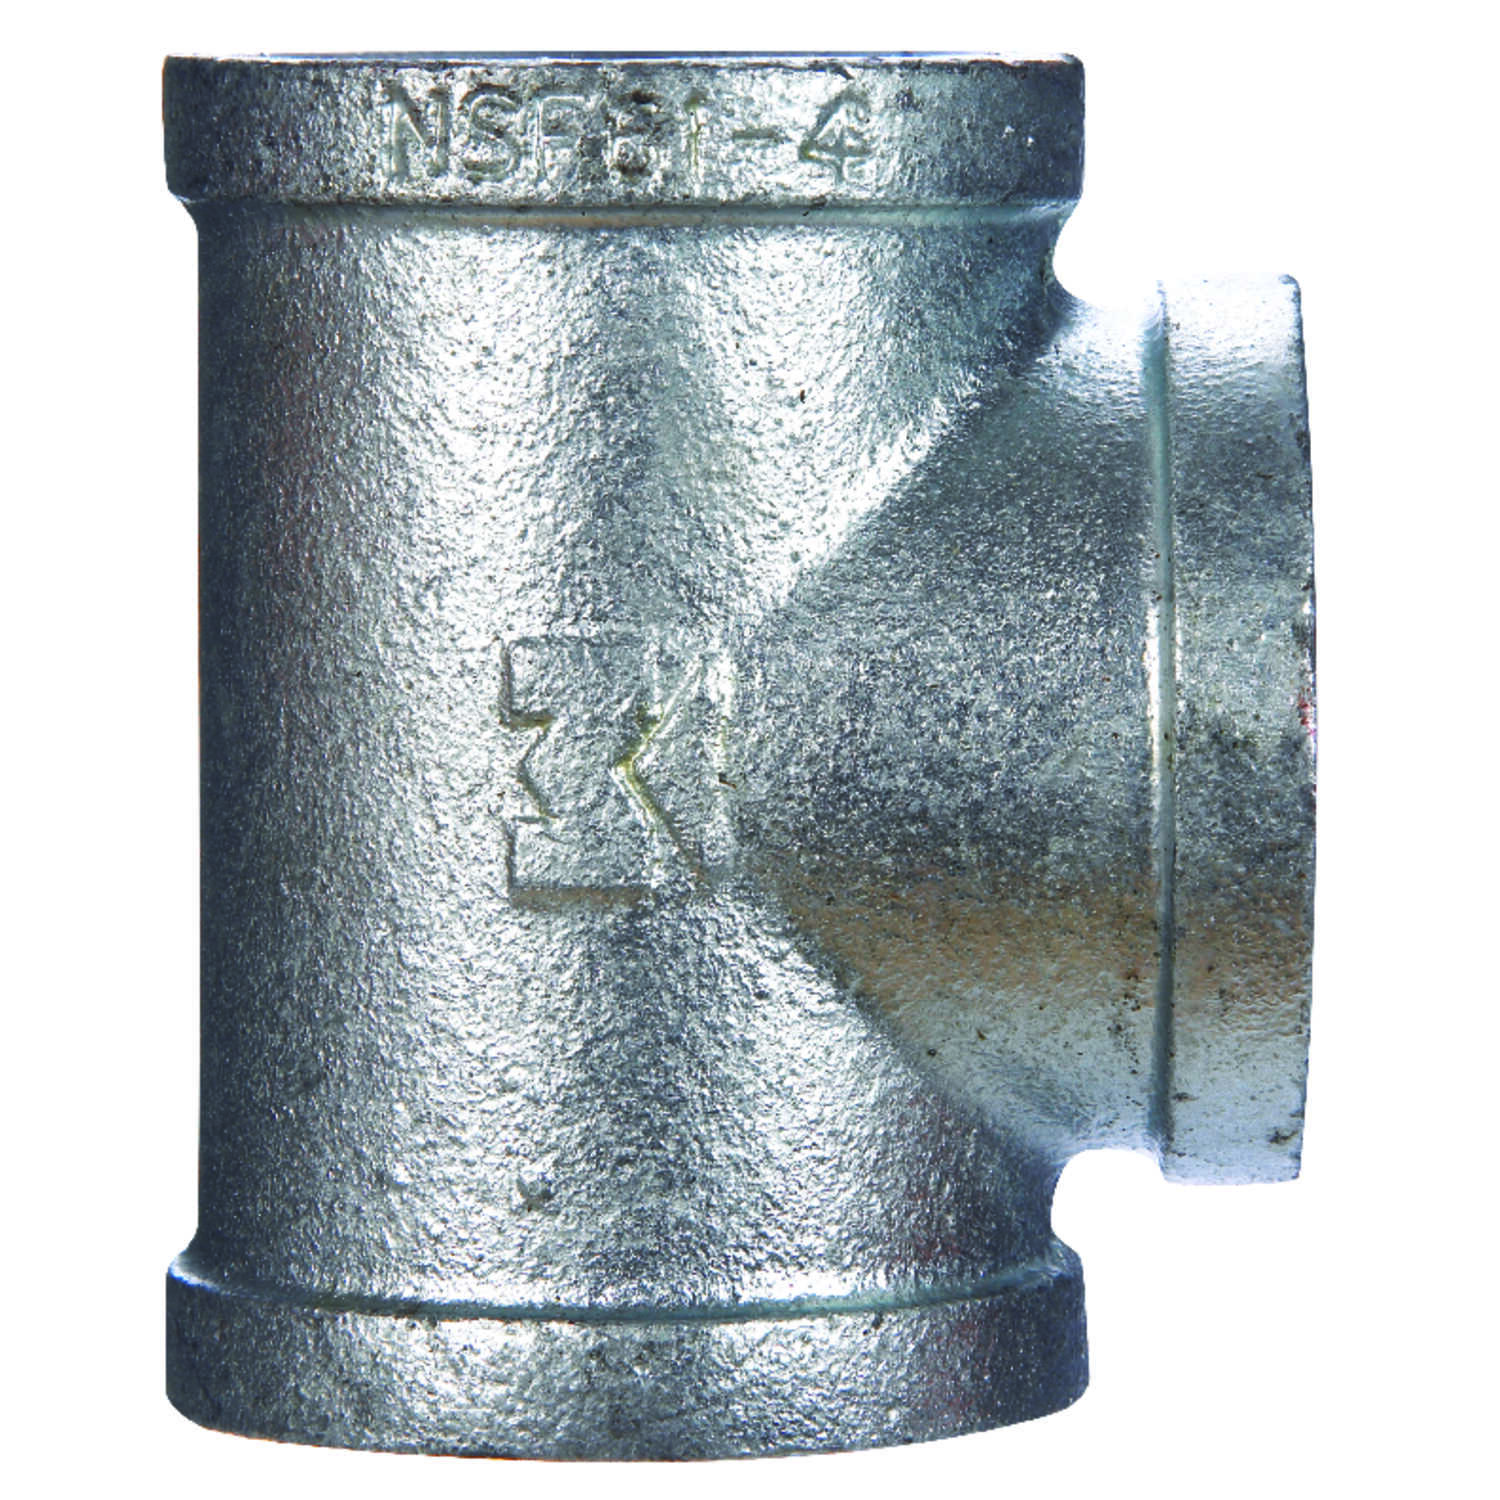 B & K  1/8 in. FPT   x 1/8 in. Dia. FPT  Galvanized  Malleable Iron  Tee